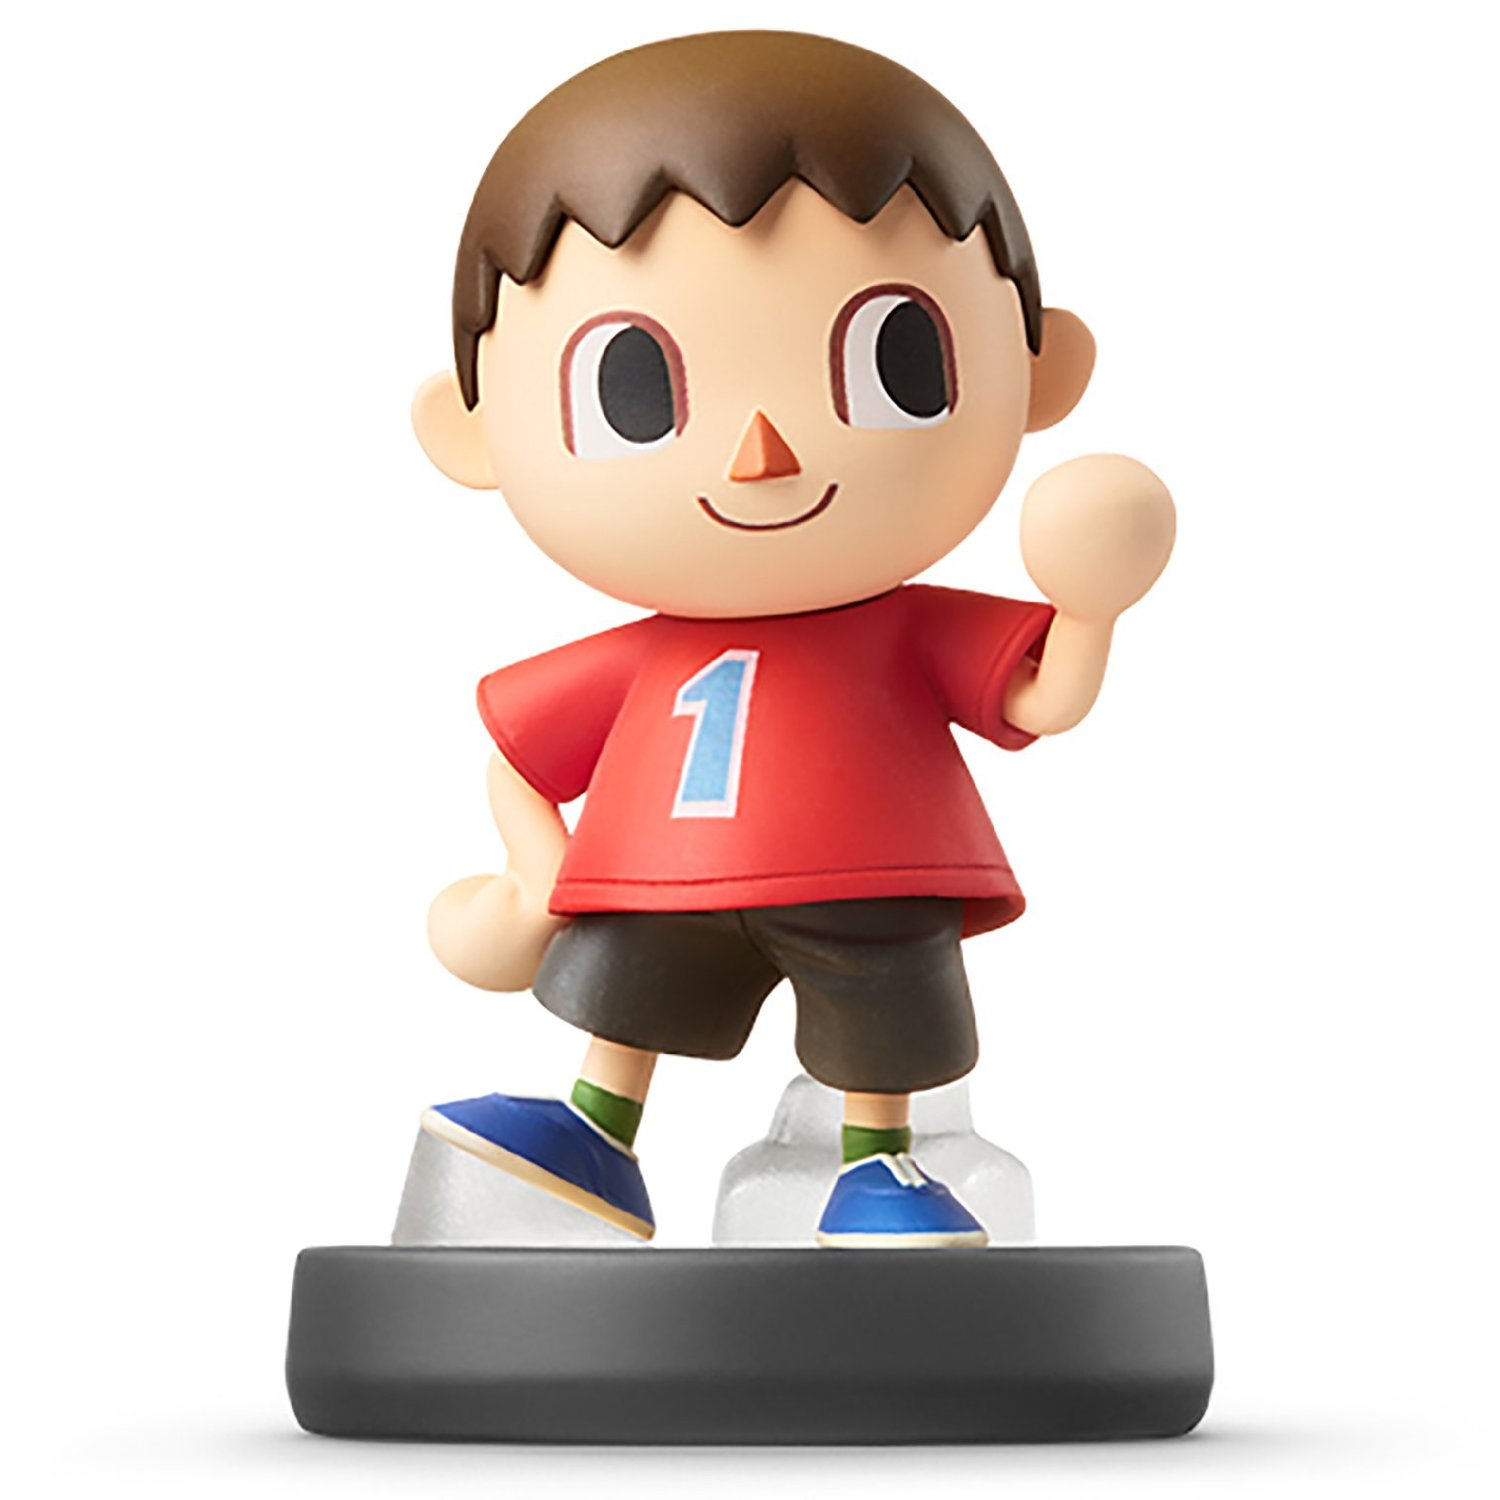 Wii U Amiibo Villager Murabito (Super Smash Bros. Series)